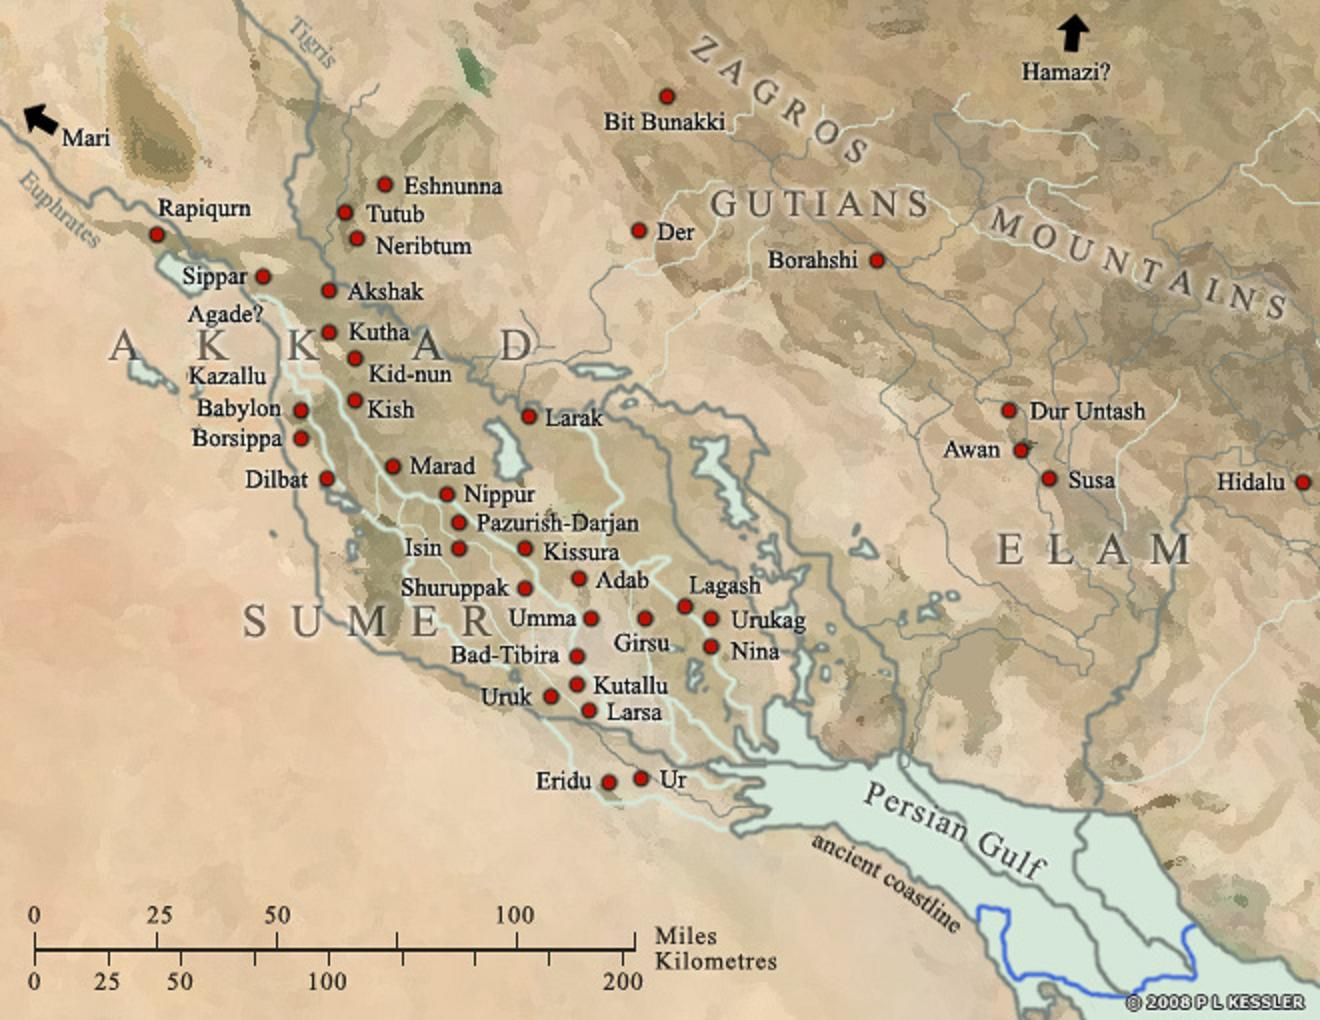 20 - Eridu on the Persian Gulf, Enki's patron city, the earliest city on Earth